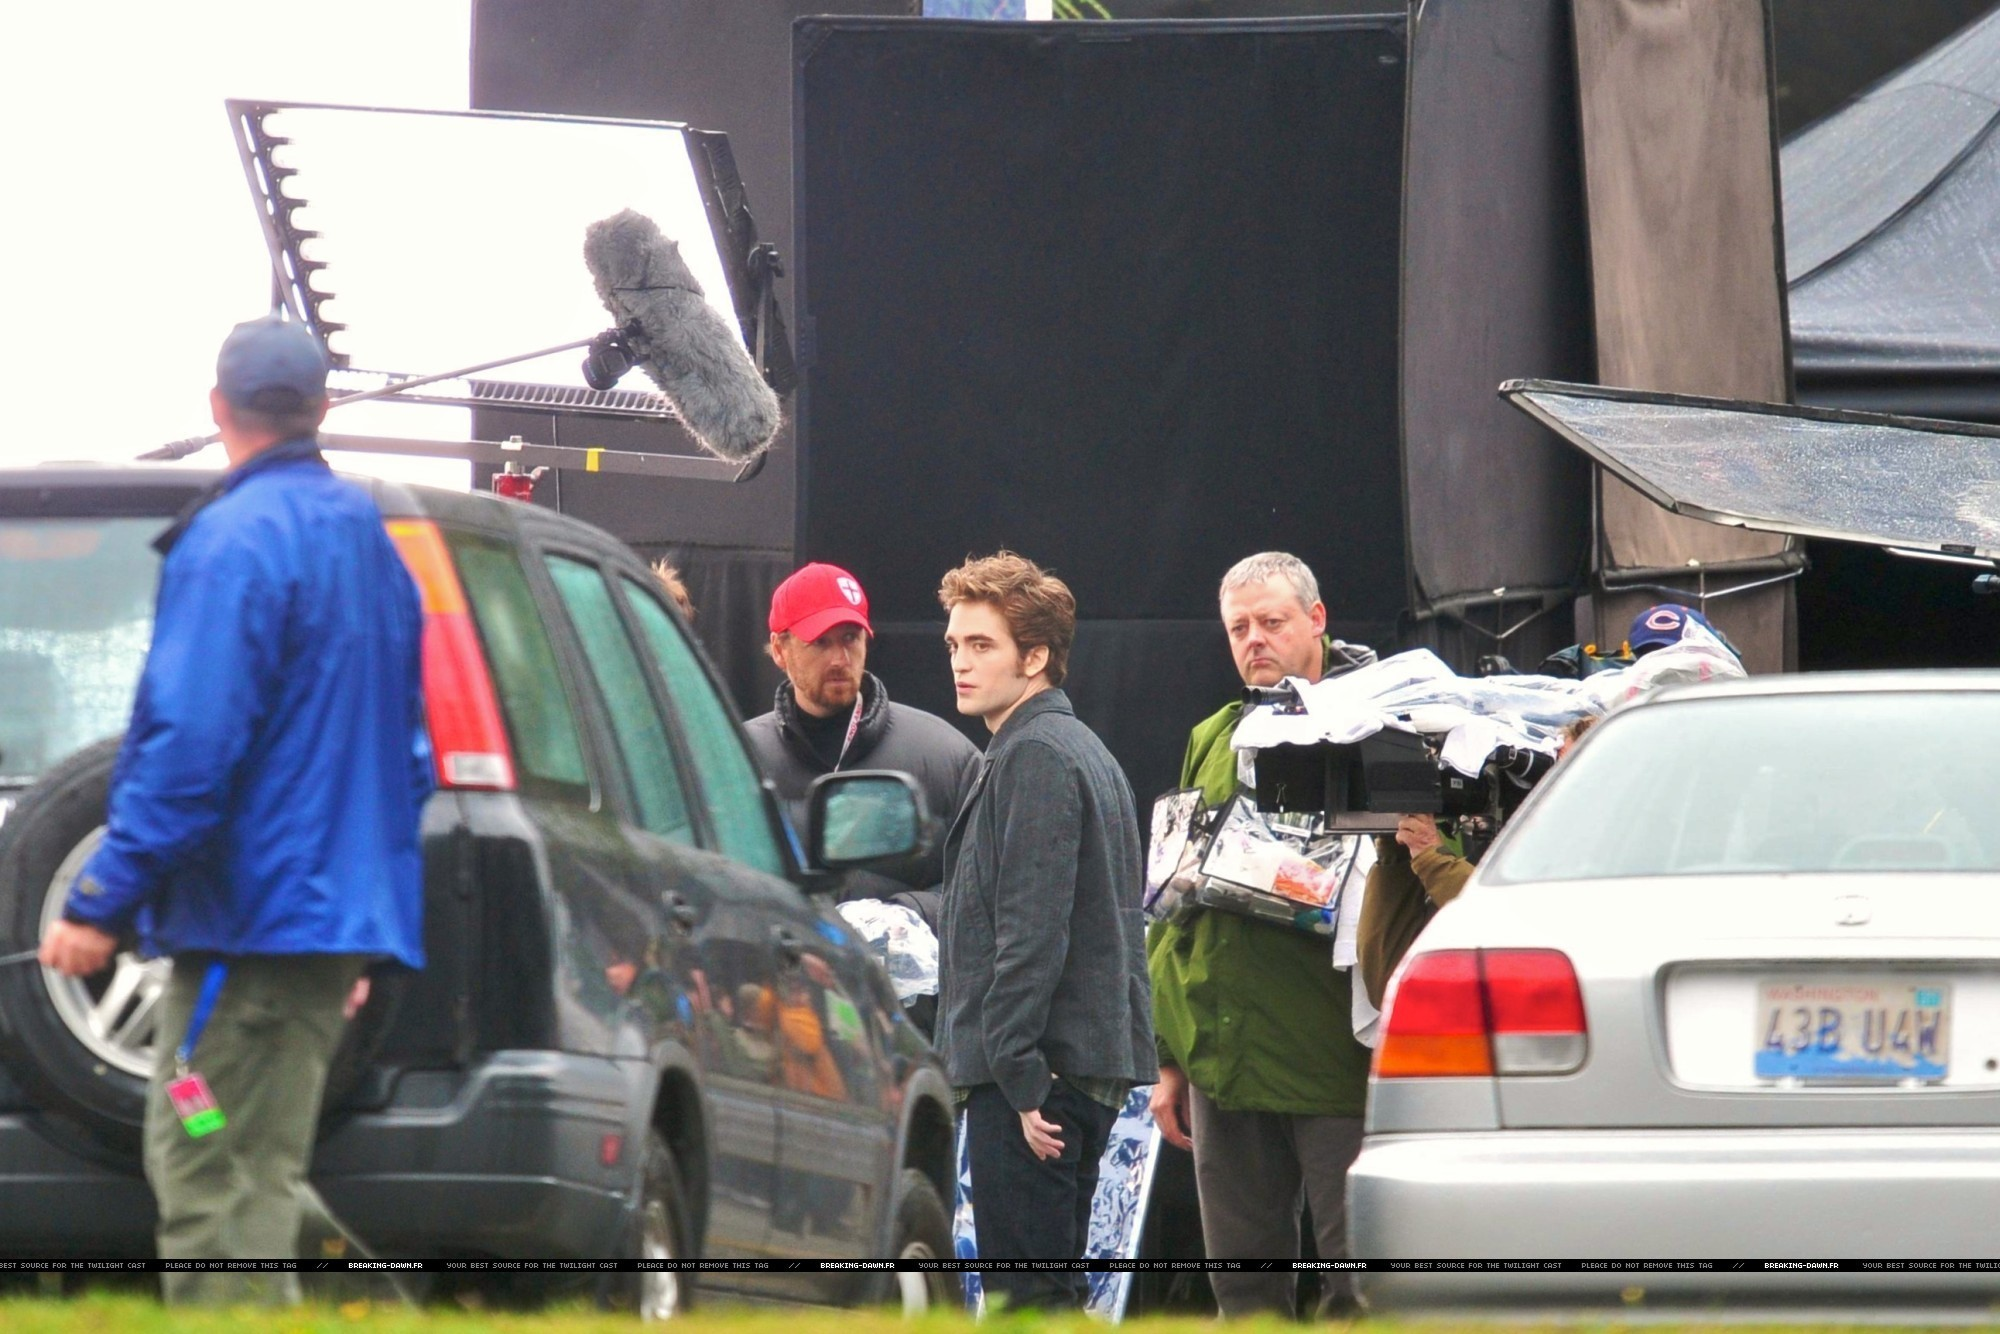 http://images2.fanpop.com/images/photos/8000000/Rob-kristen-on-the-set-of-Eclipse-yesterday-twilight-series-8080078-2000-1334.jpg